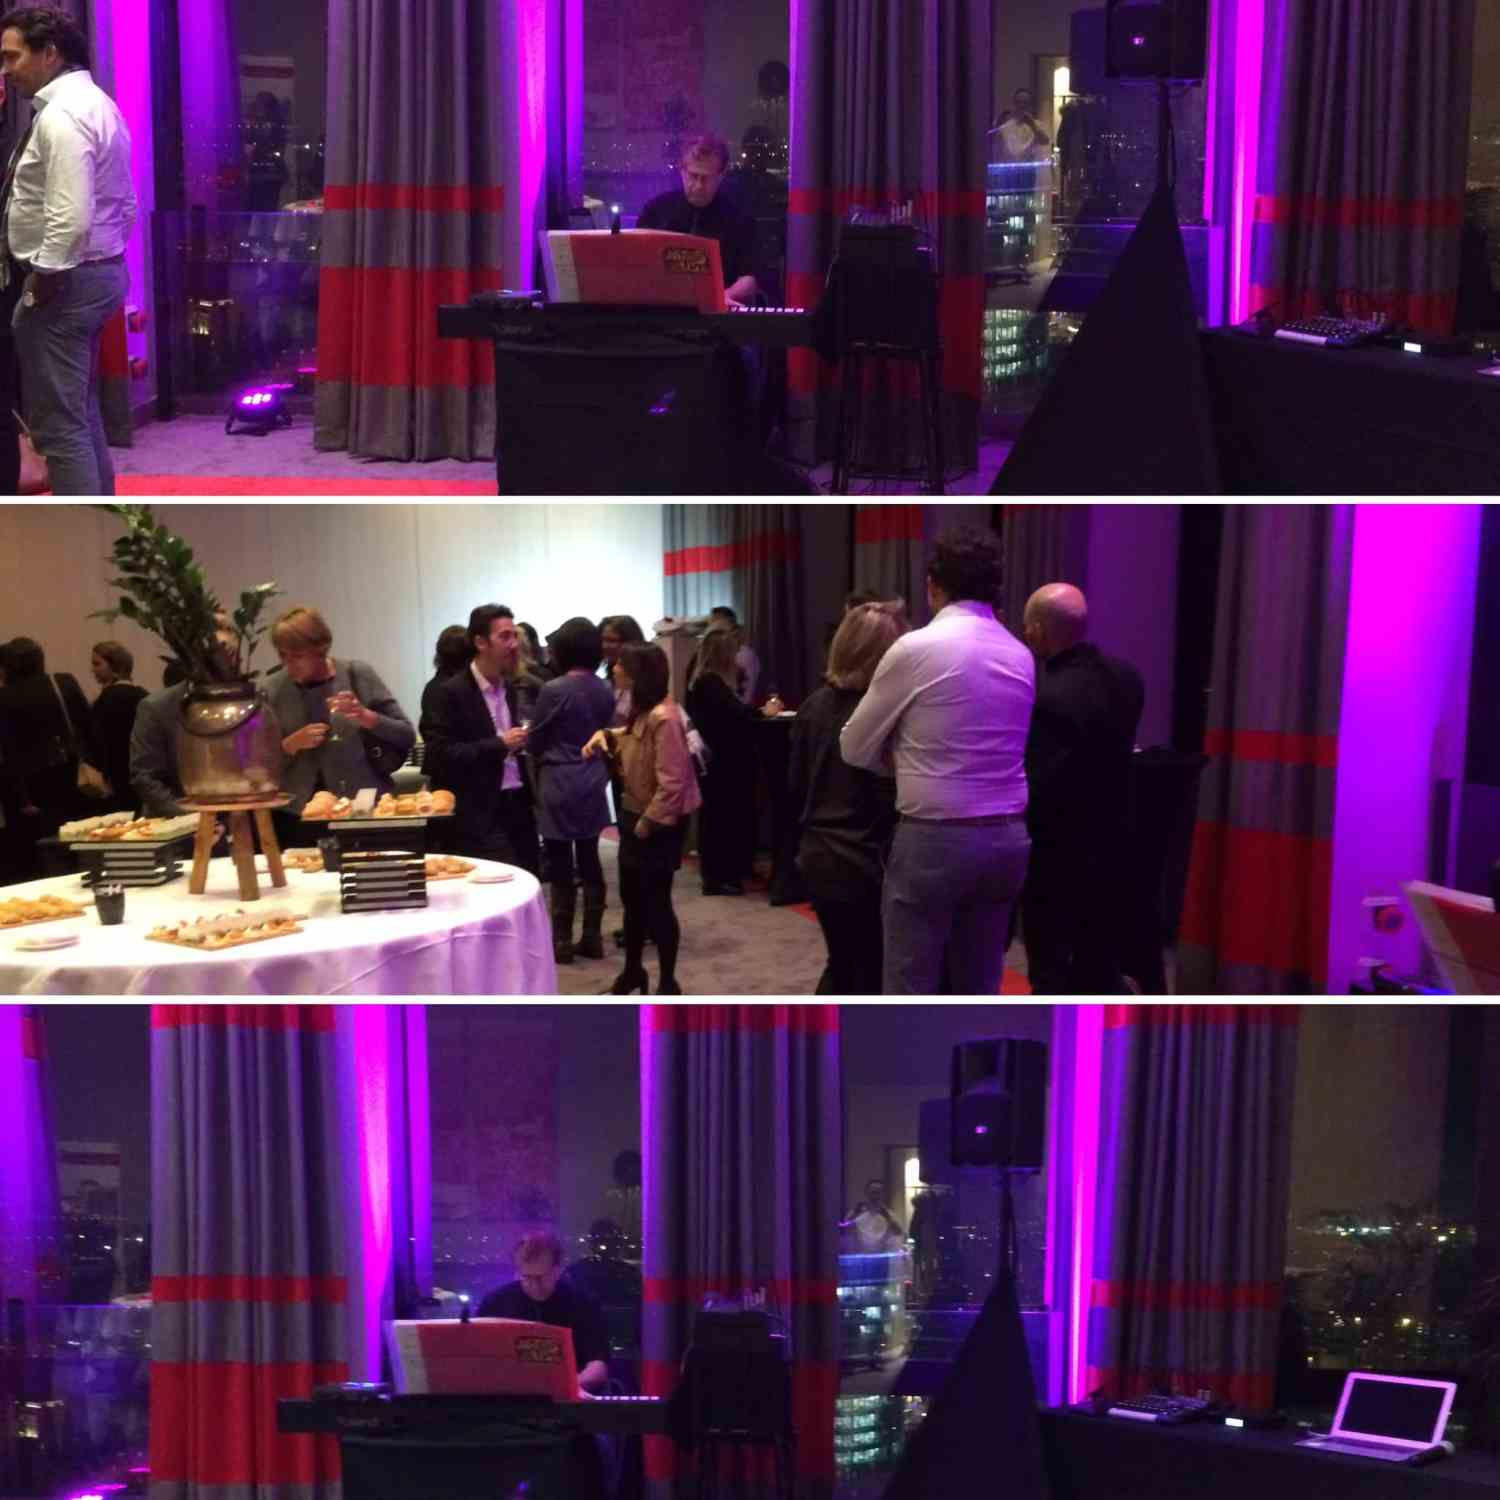 events-radisson-keydesrtistes-lyon